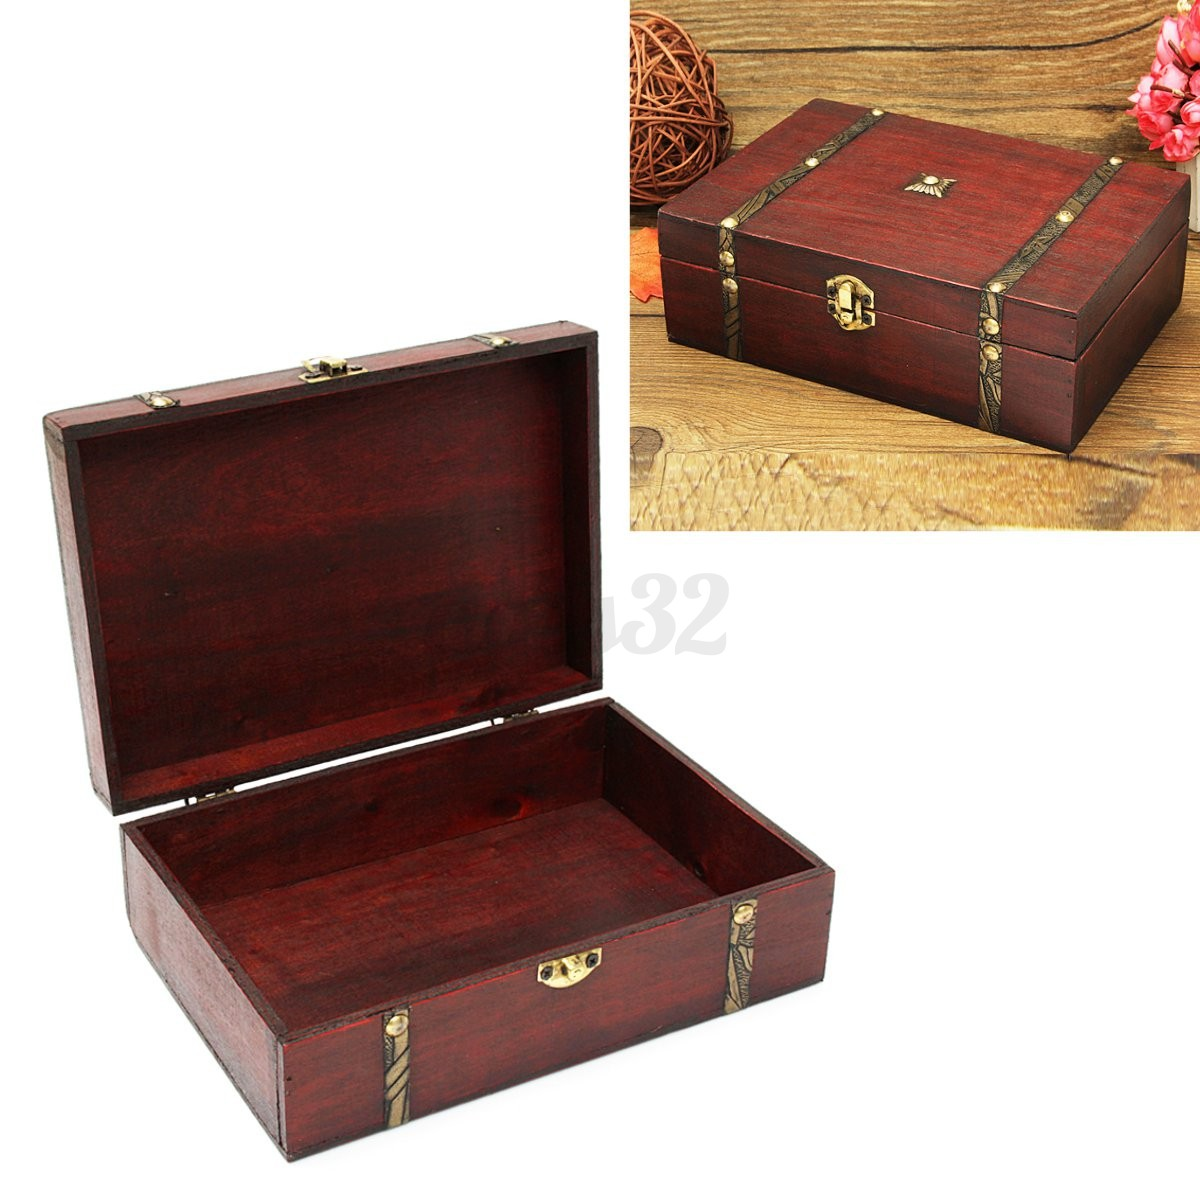 Decorative Wooden Jewelry Boxes : Vintage decorative wooden jewelry trinket storage box case